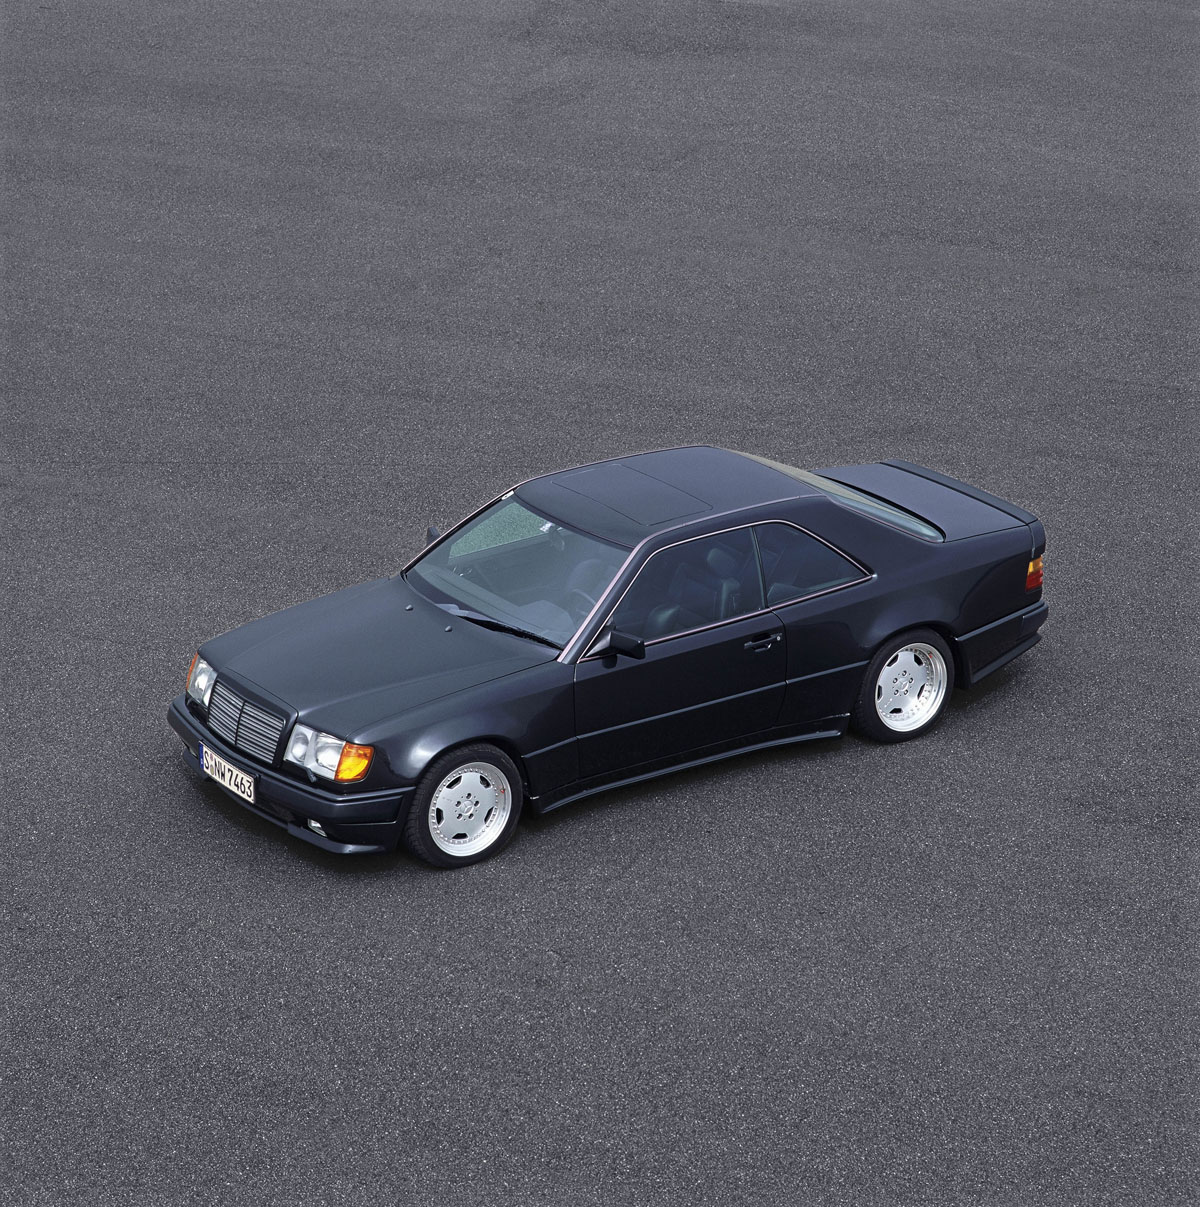 mercedes-w124-coupe-amg | Ran When Parked